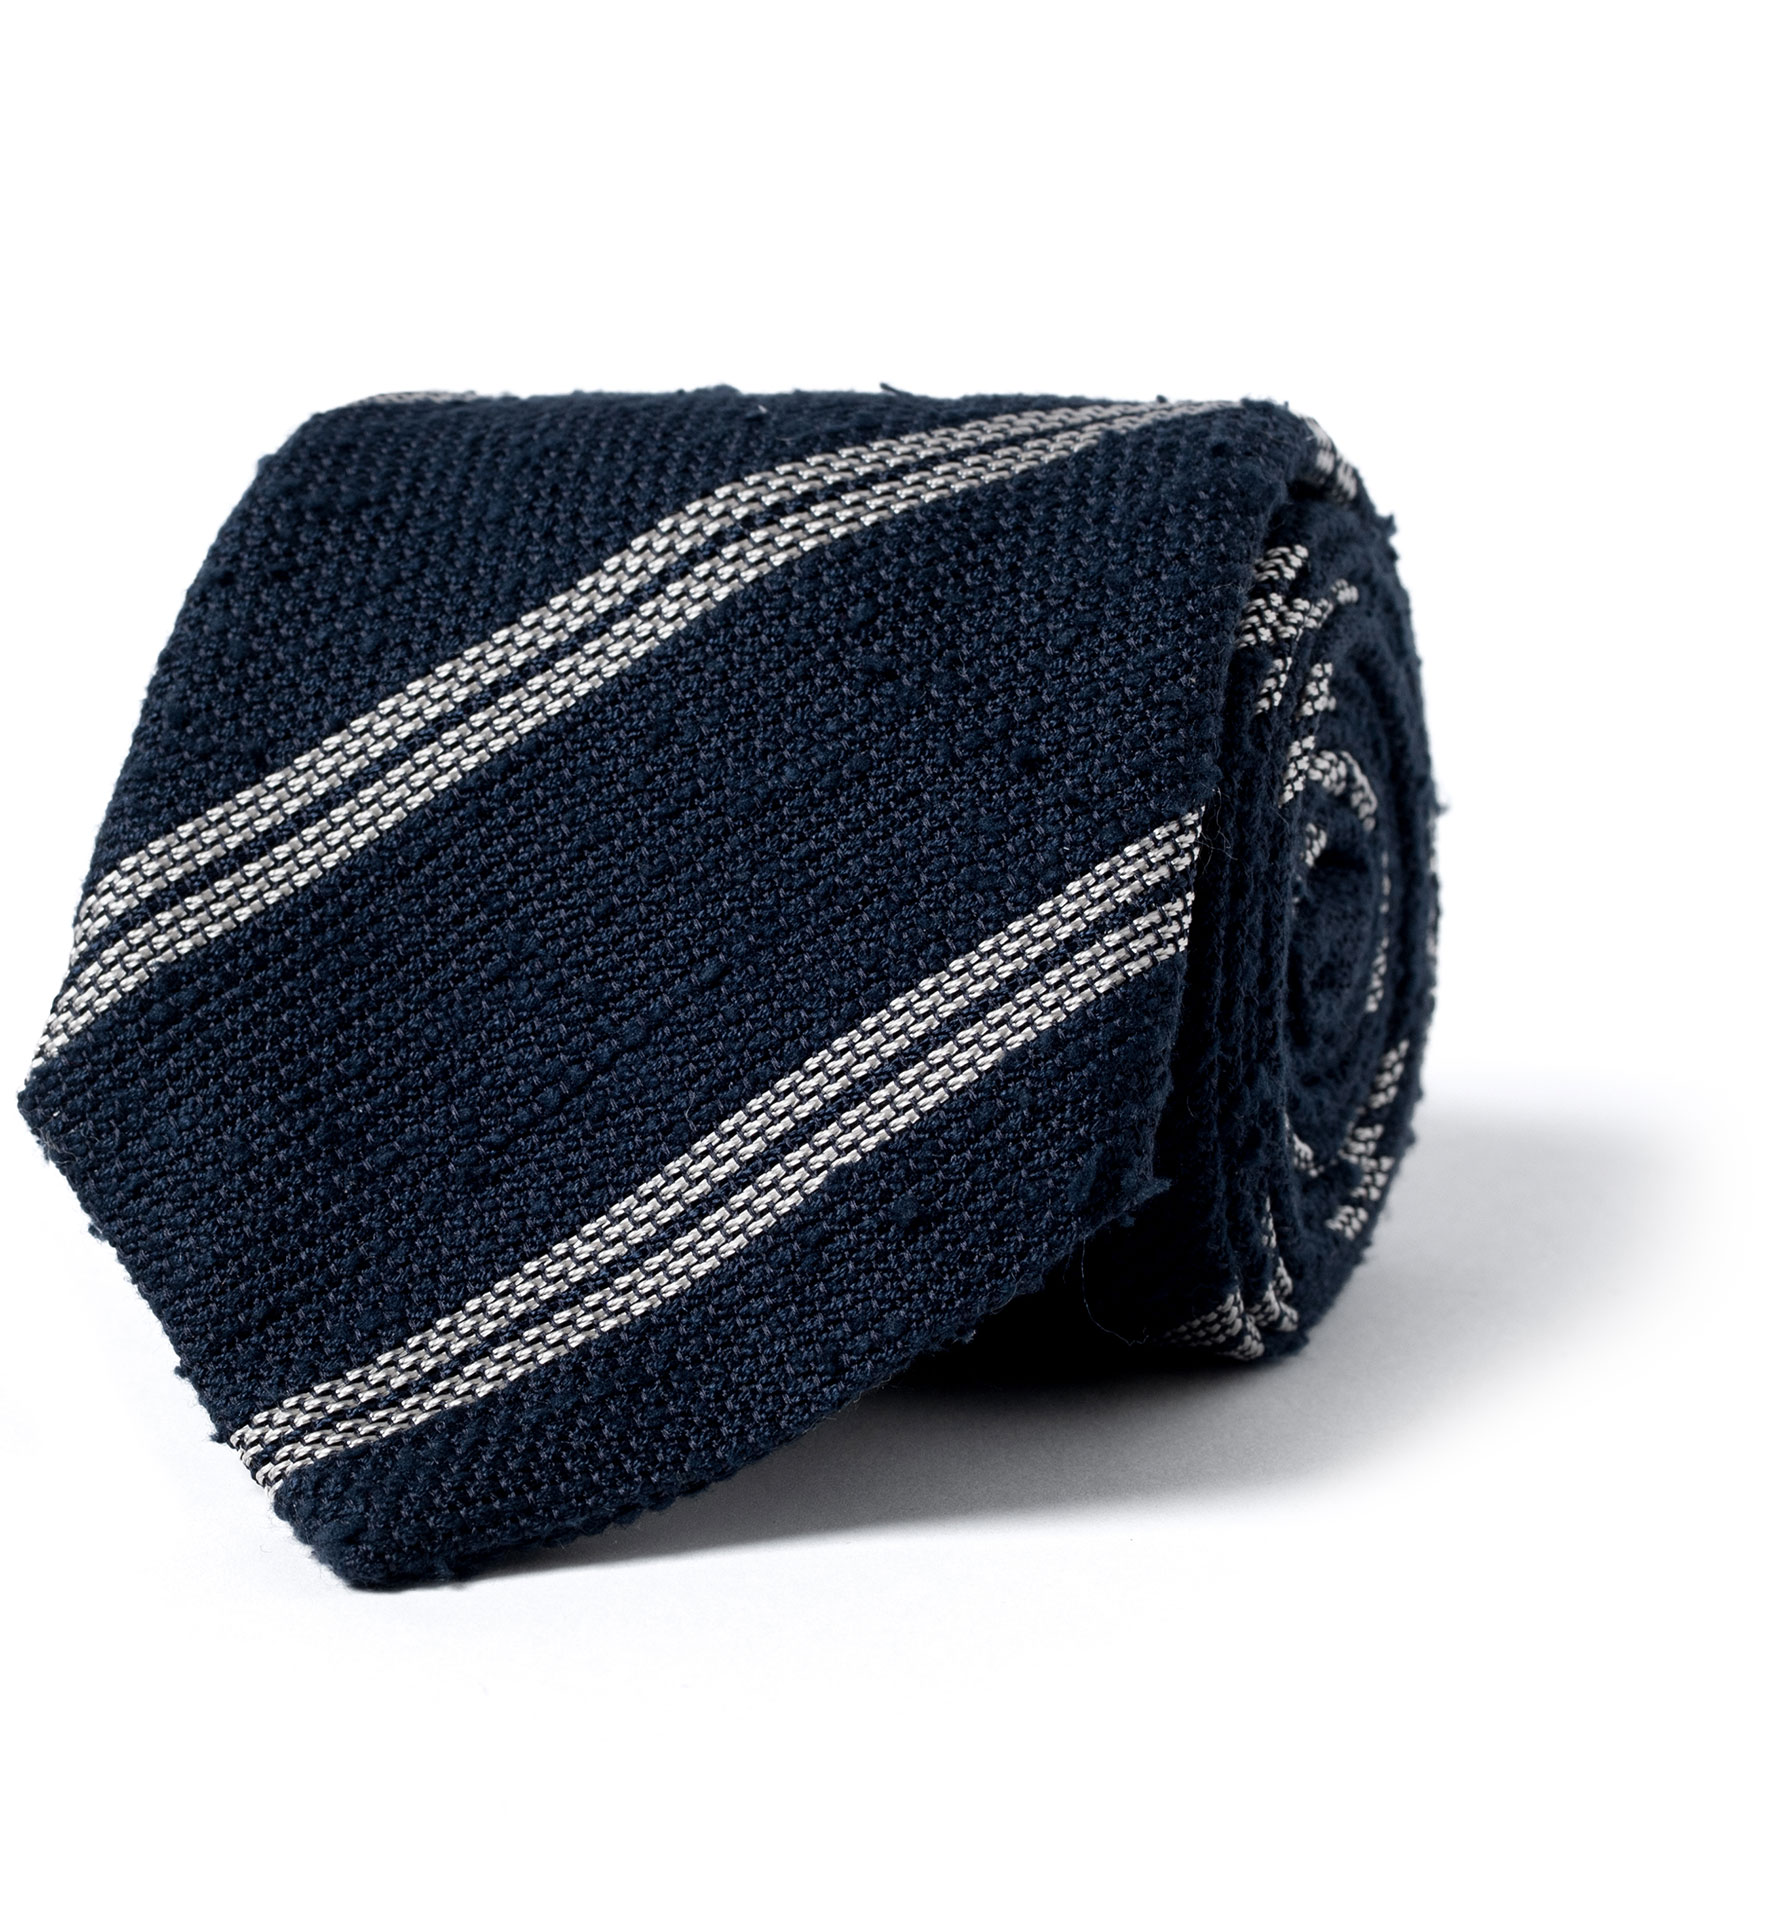 Zoom Image of Navy and Cream Double Stripe Shantung Grenadine Tie